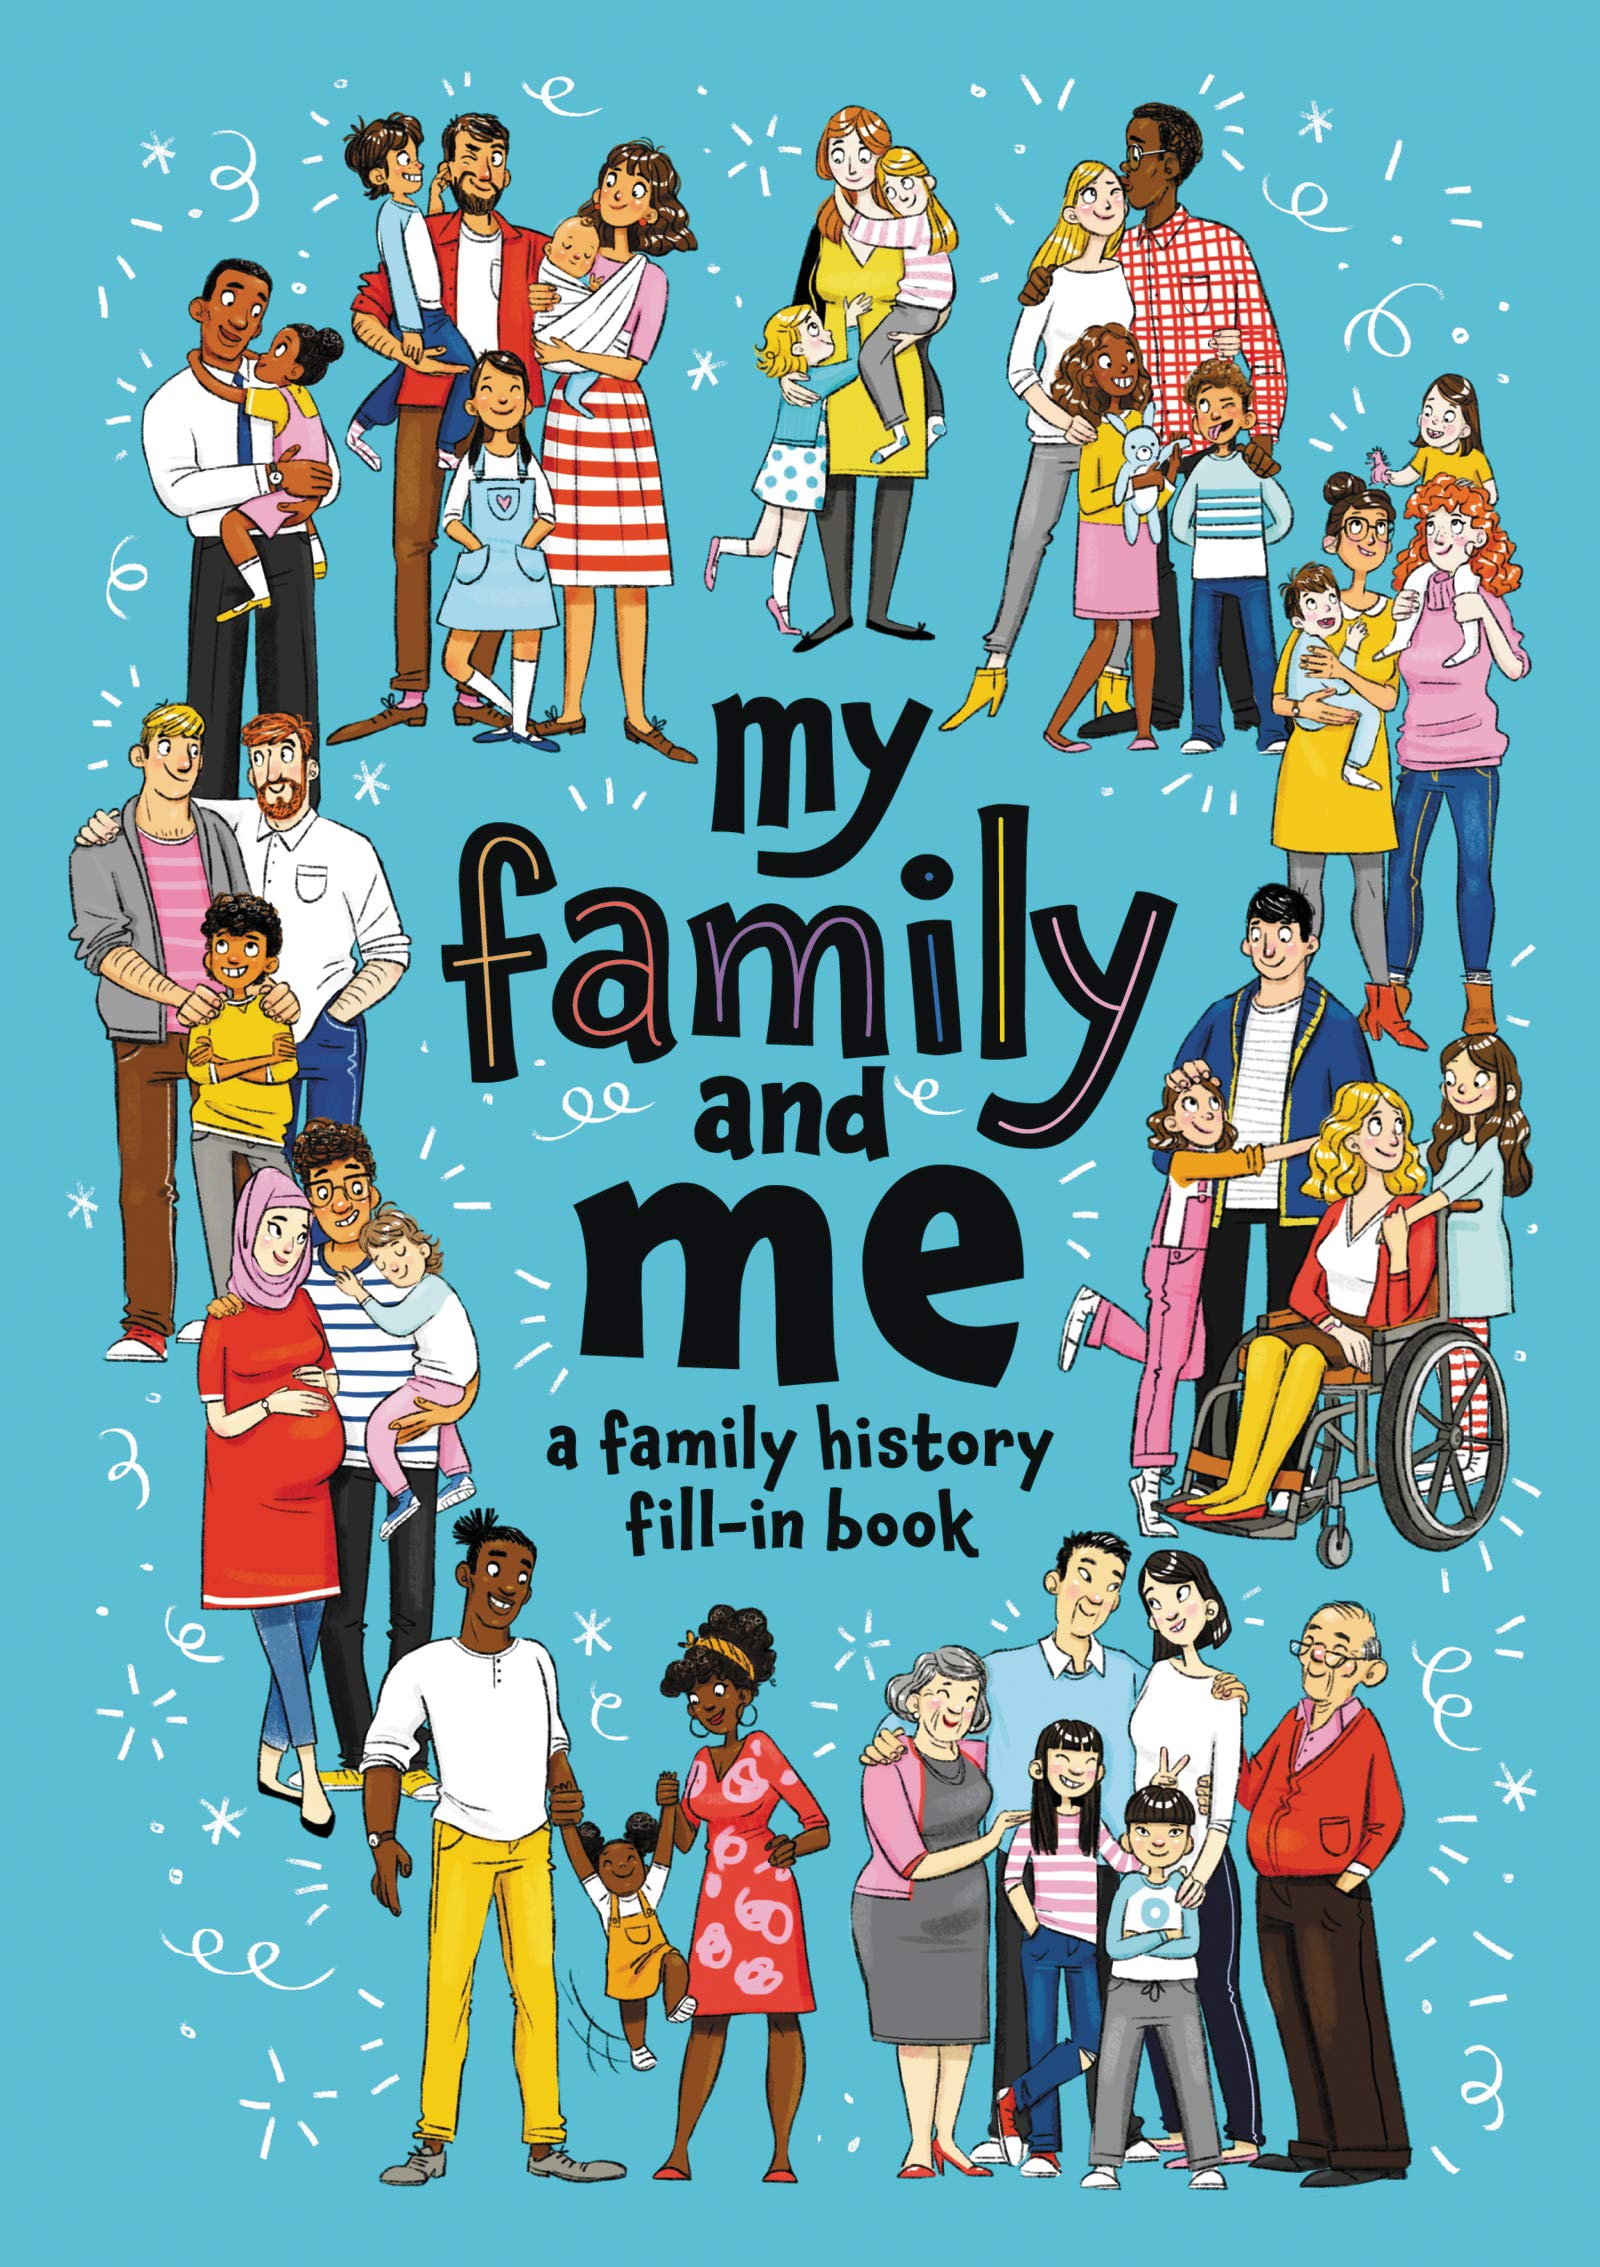 My Family And Me A Family History Fill In Book Stevens Cara J 9780062914842 Amazon Com Books